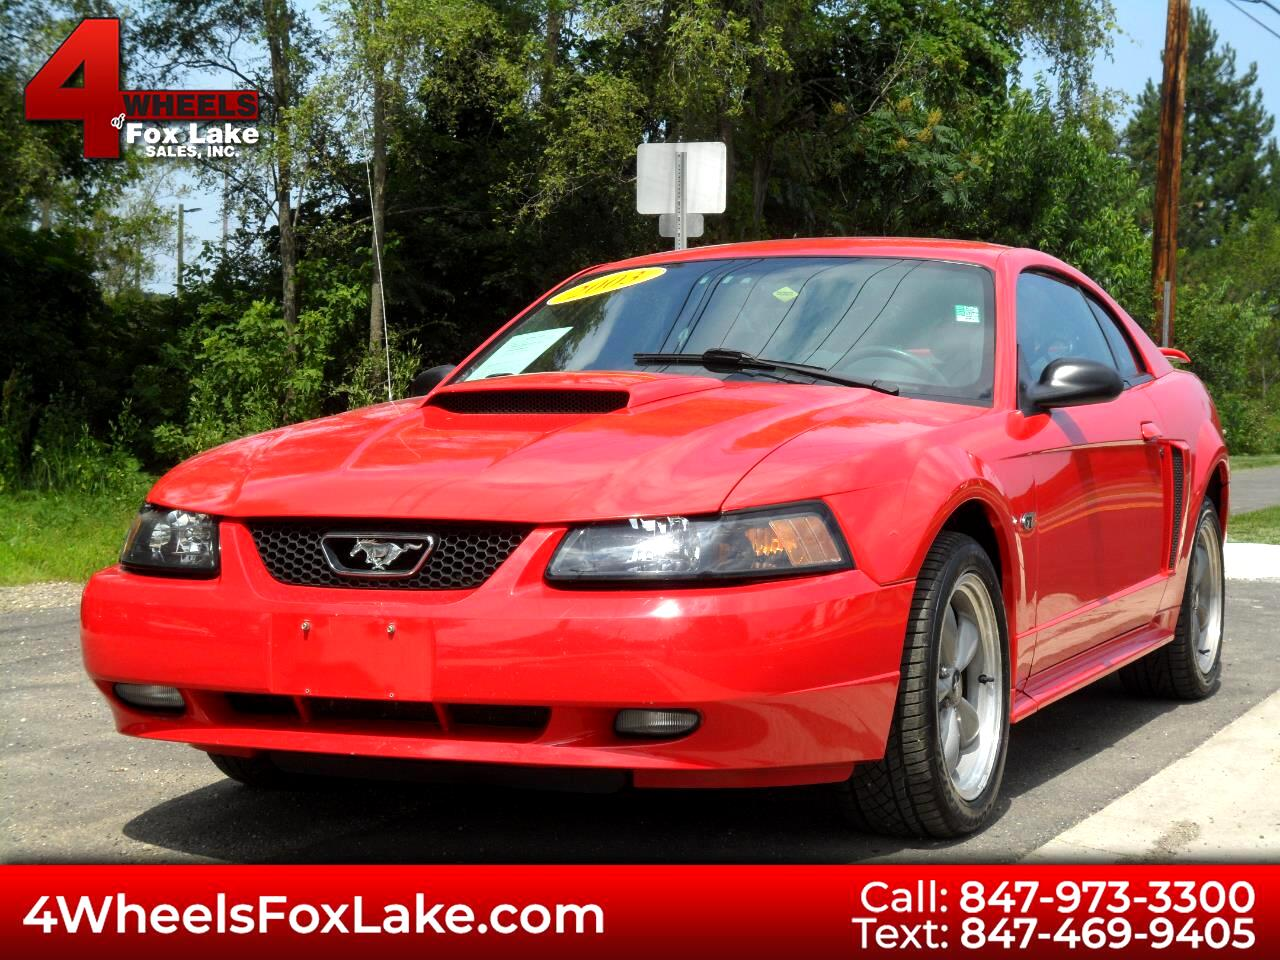 2003 Ford Mustang GT Deluxe Coupe